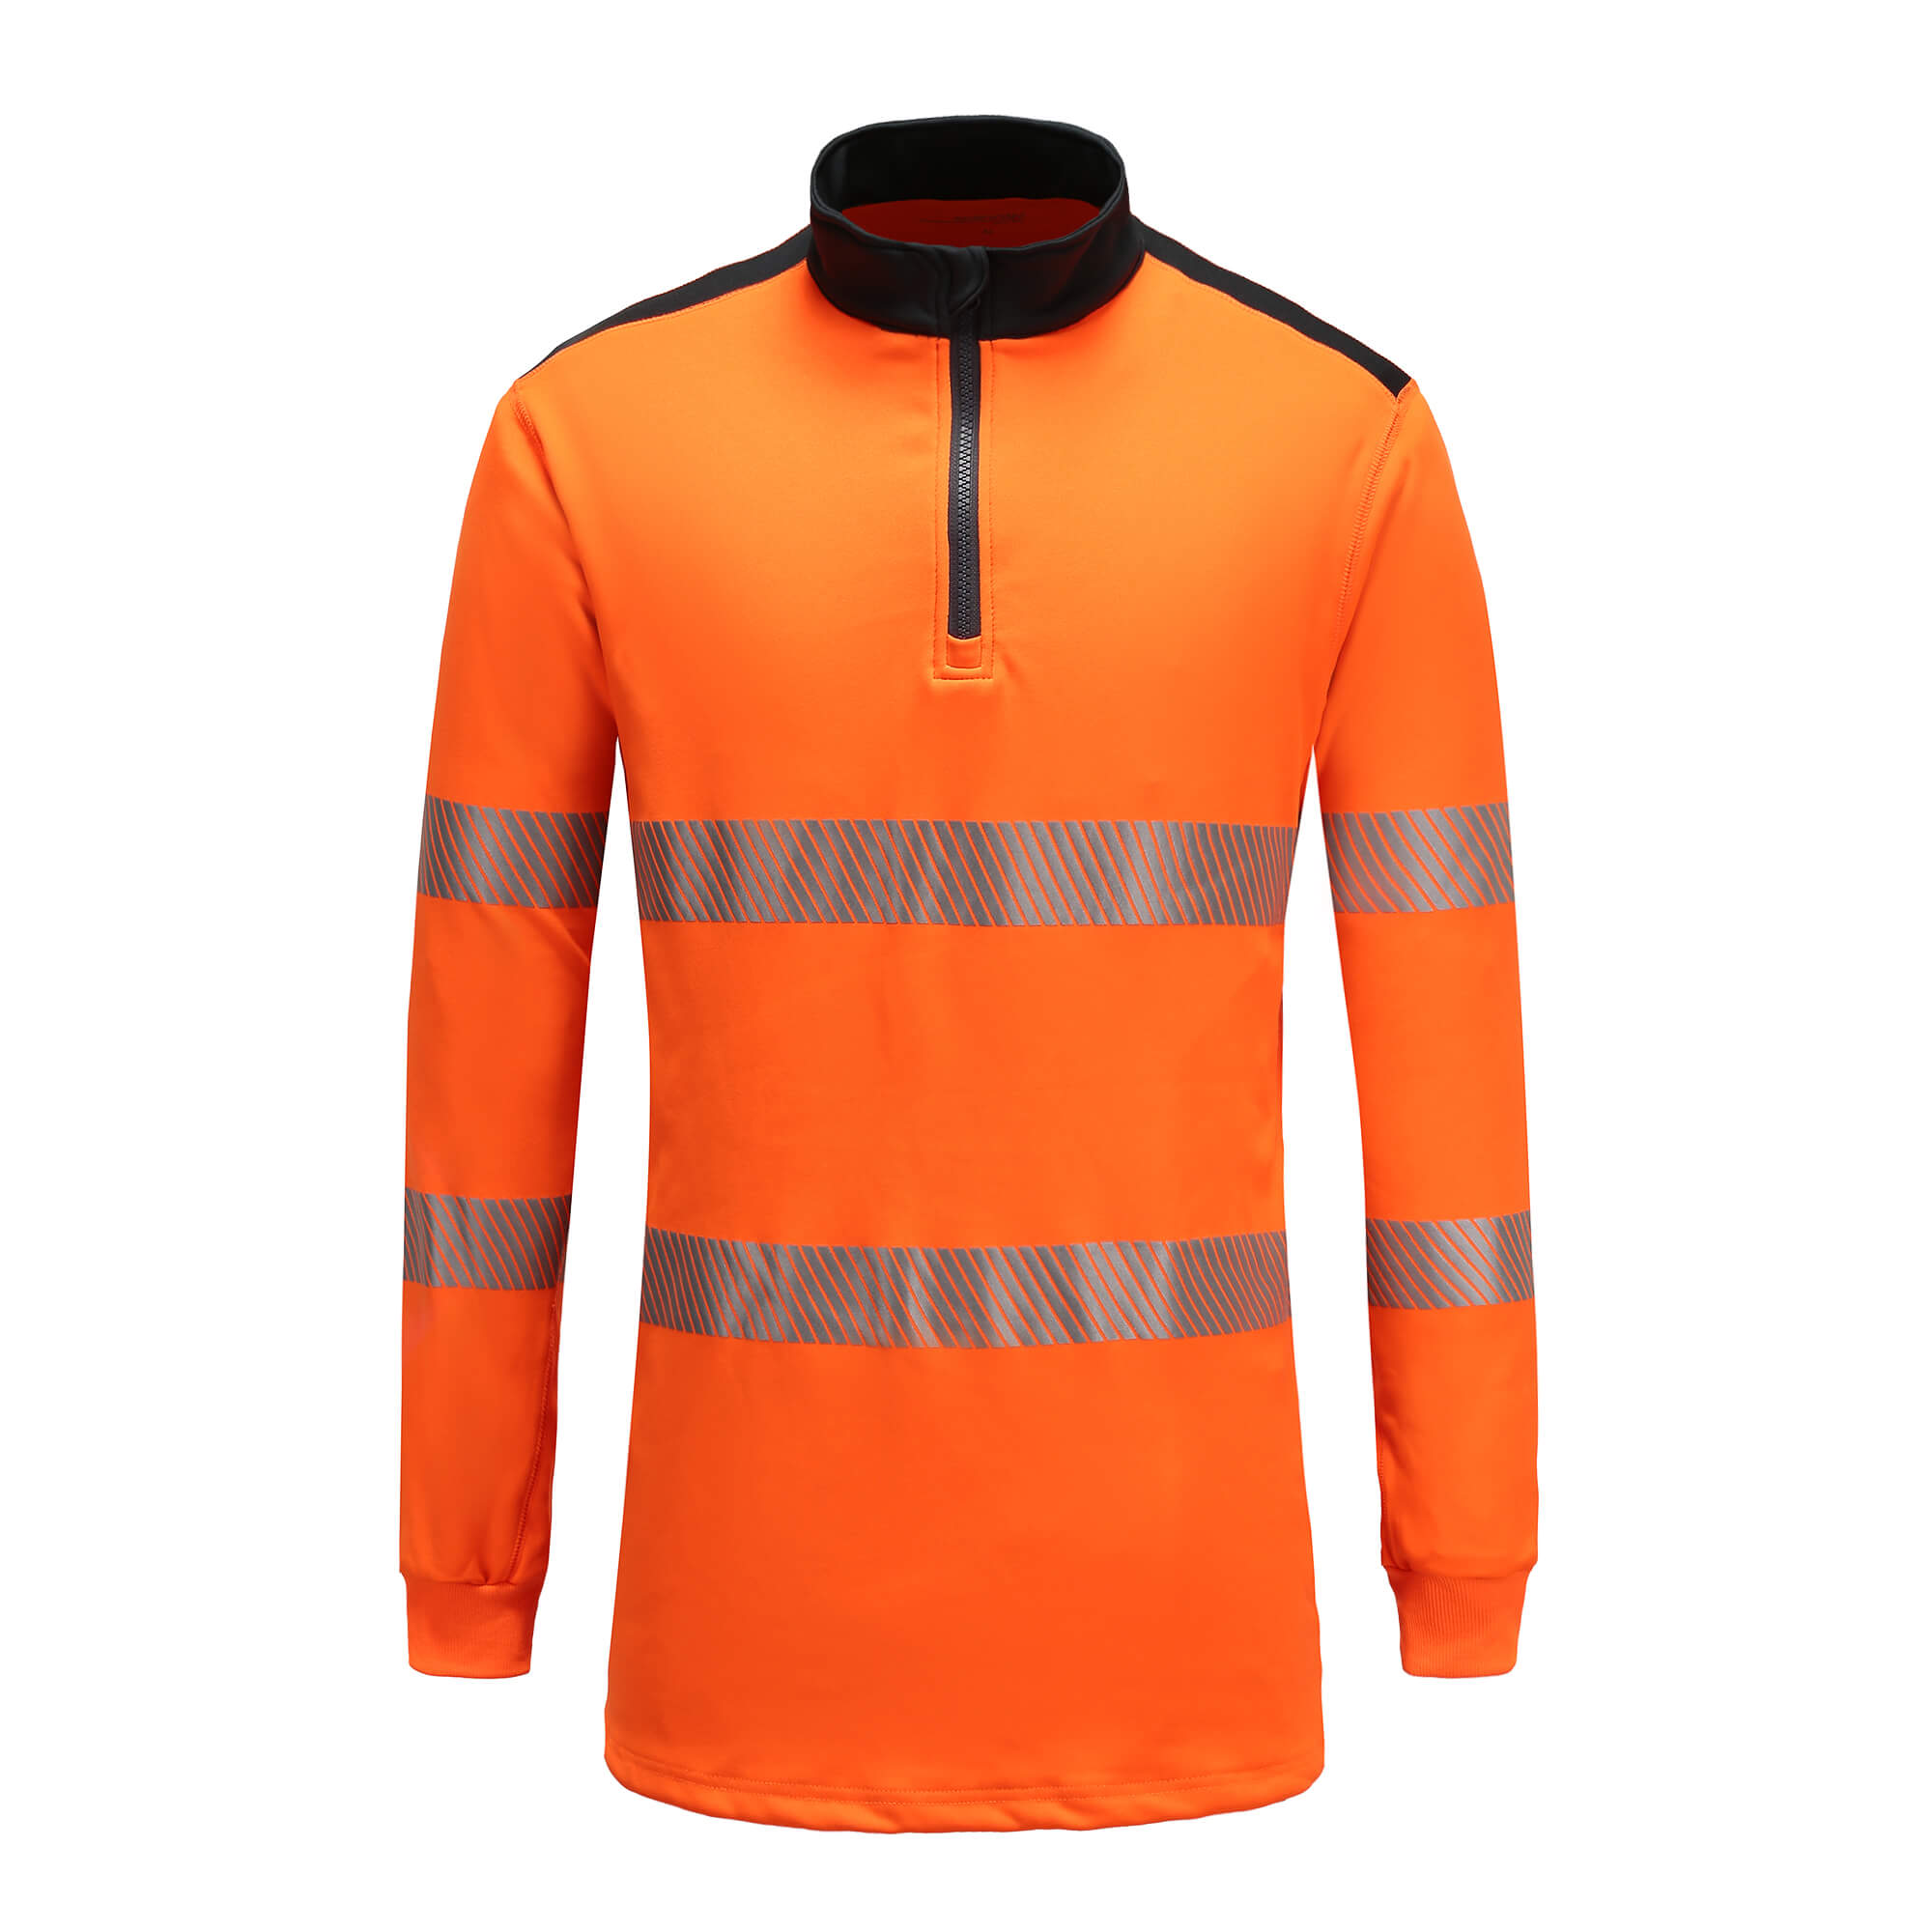 Global Trend ThermoShirt 9403